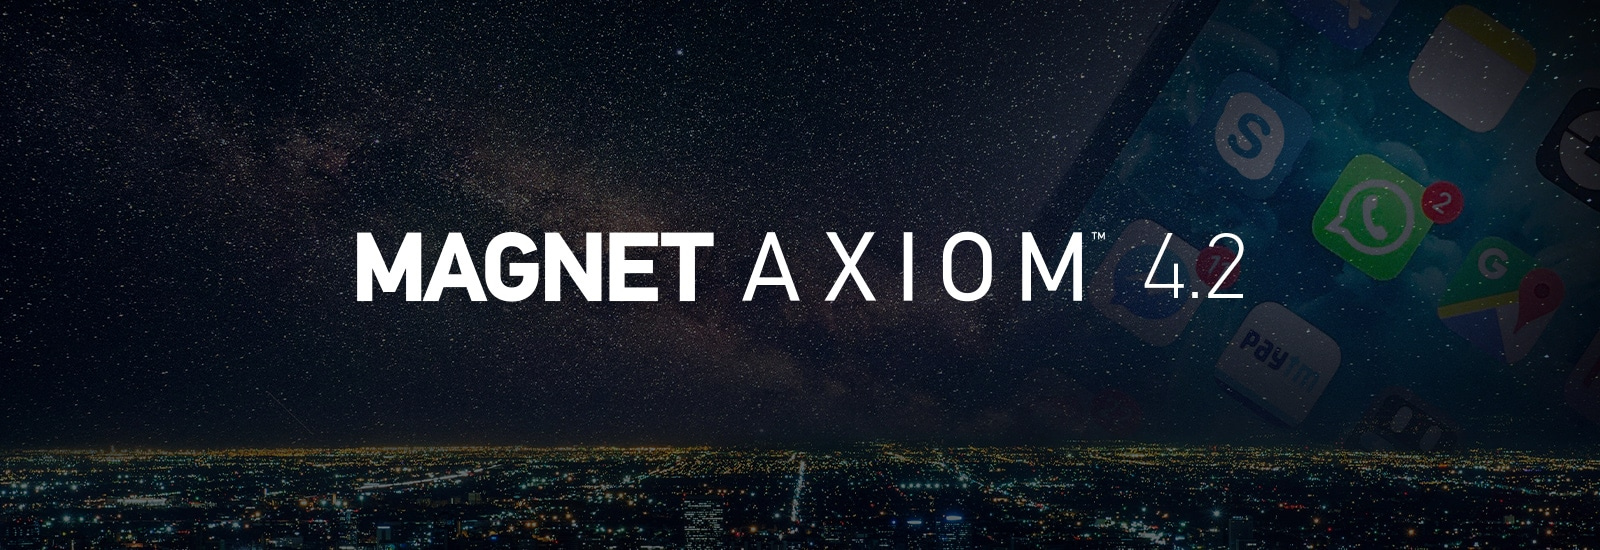 Updates in Magnet AXIOM 4.2 Include Support for AFF4, Skype Warrant Returns, and WhatsApp